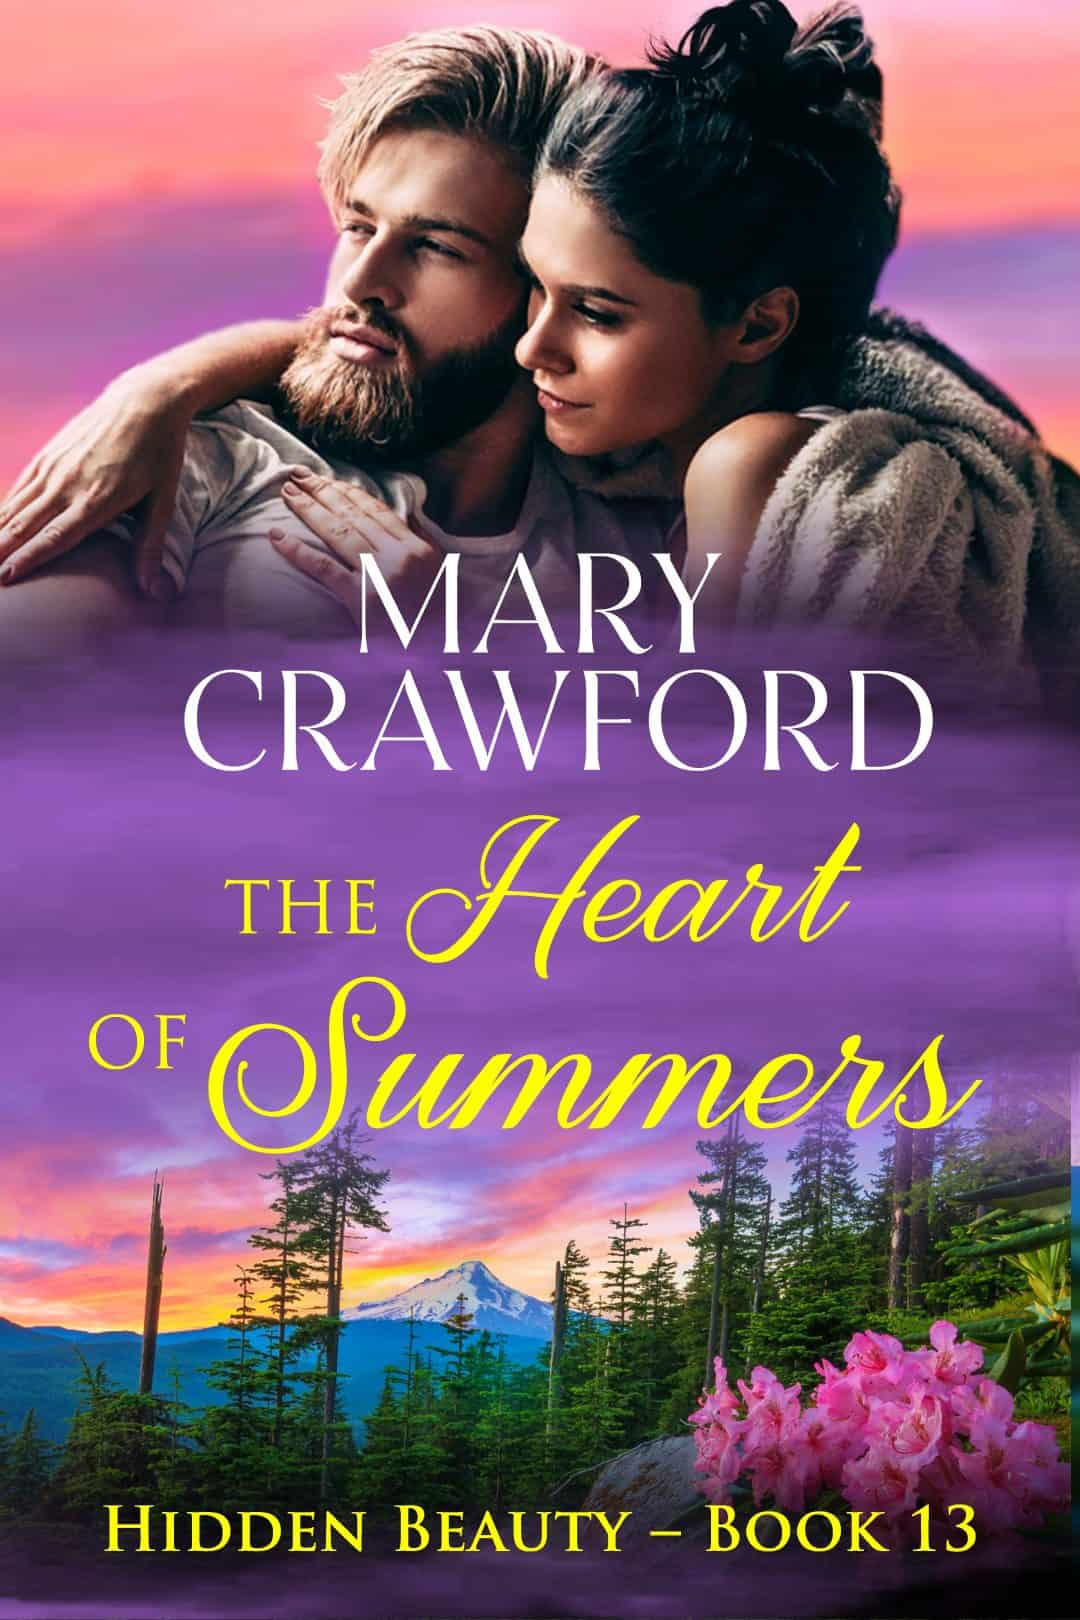 The Heart of Summer